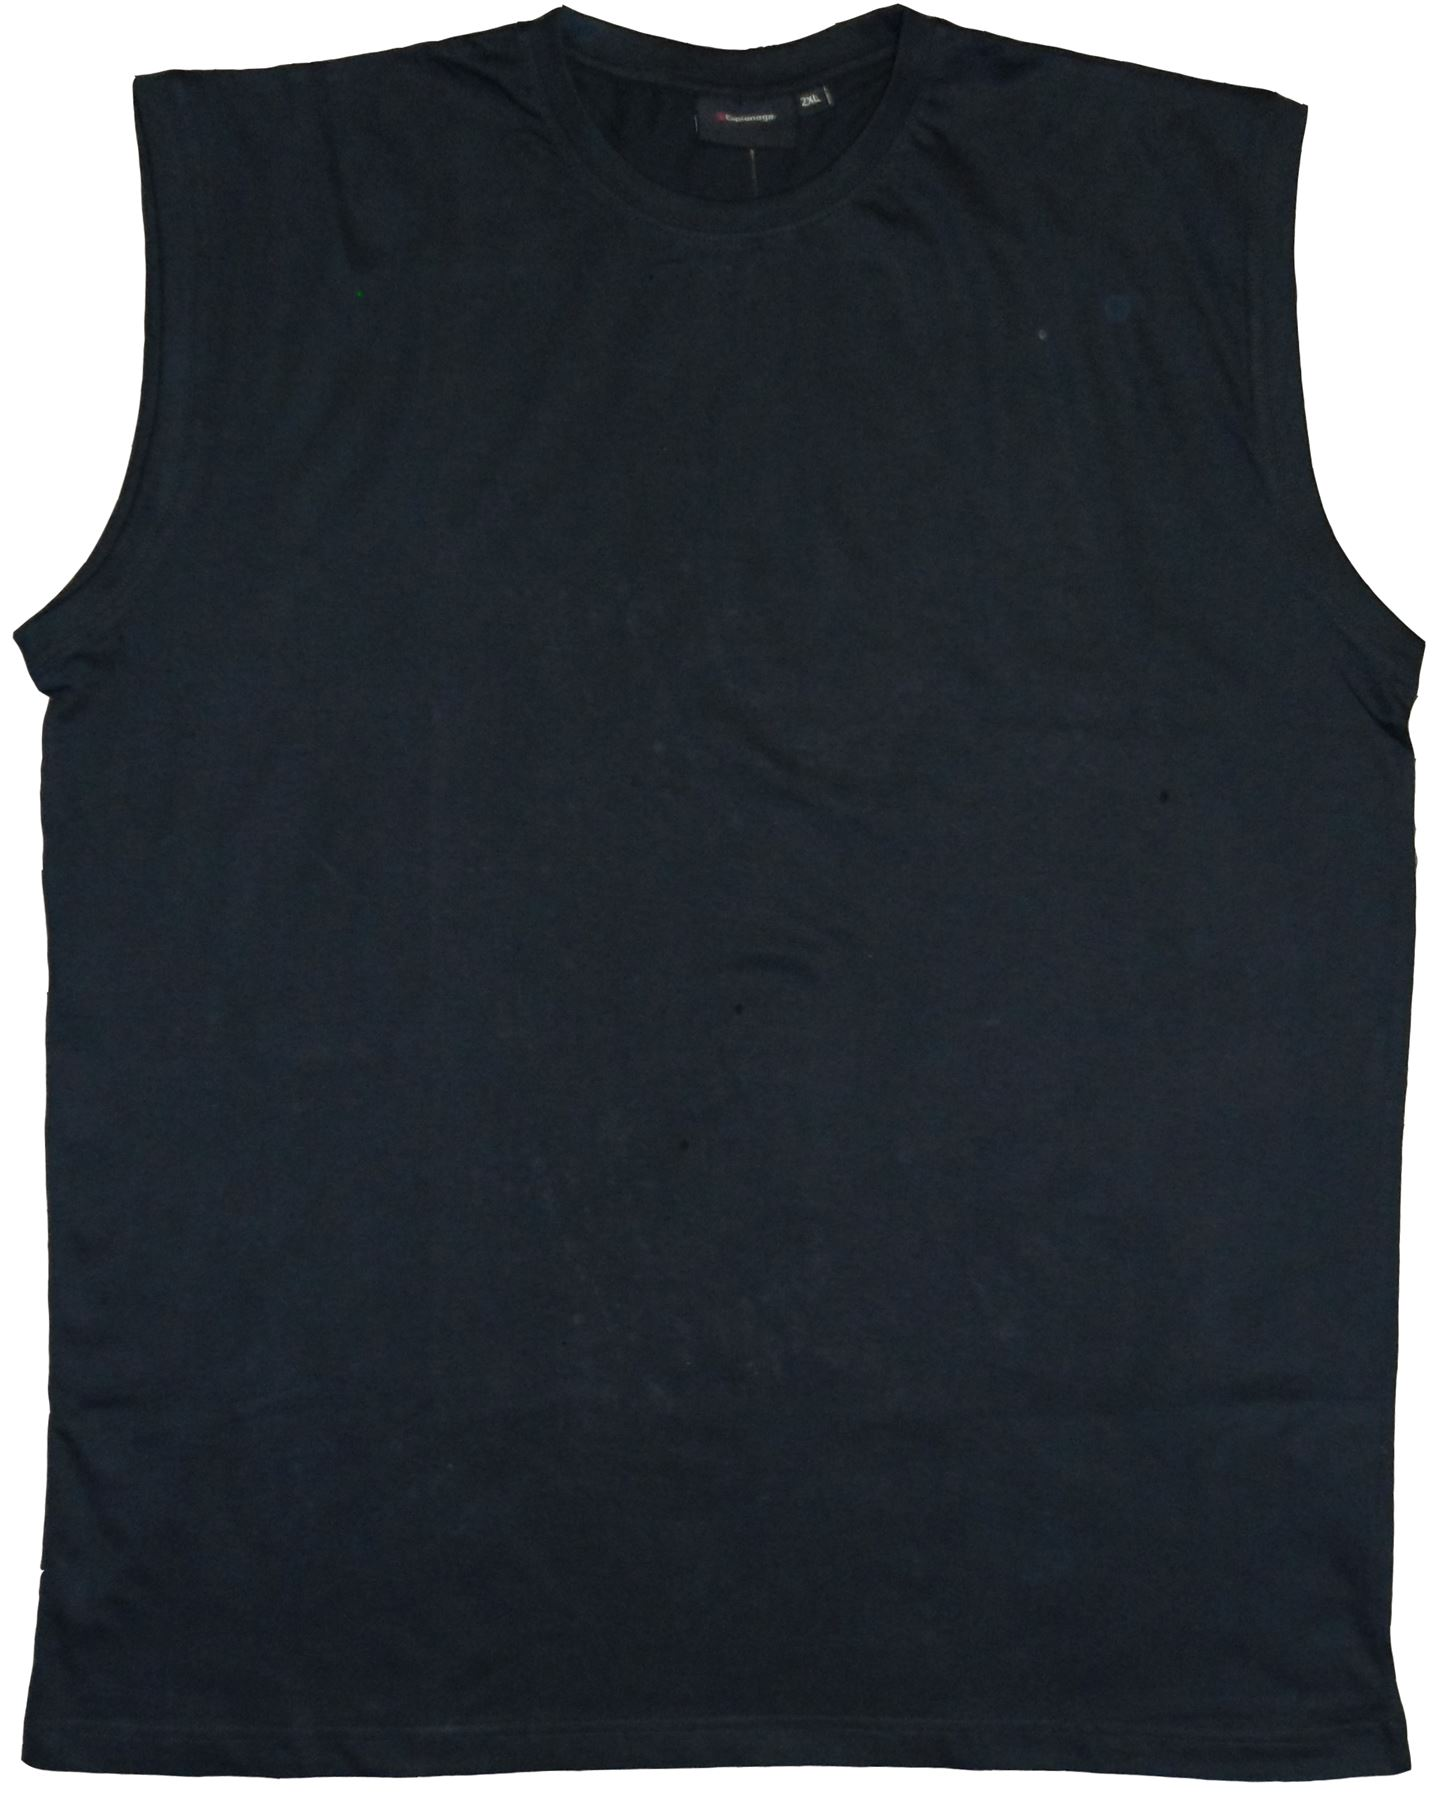 Espionage Combed Cottton Crew Neck Sleeve Less Muscle Tee,Size 2XL-8XL, 8 Colors